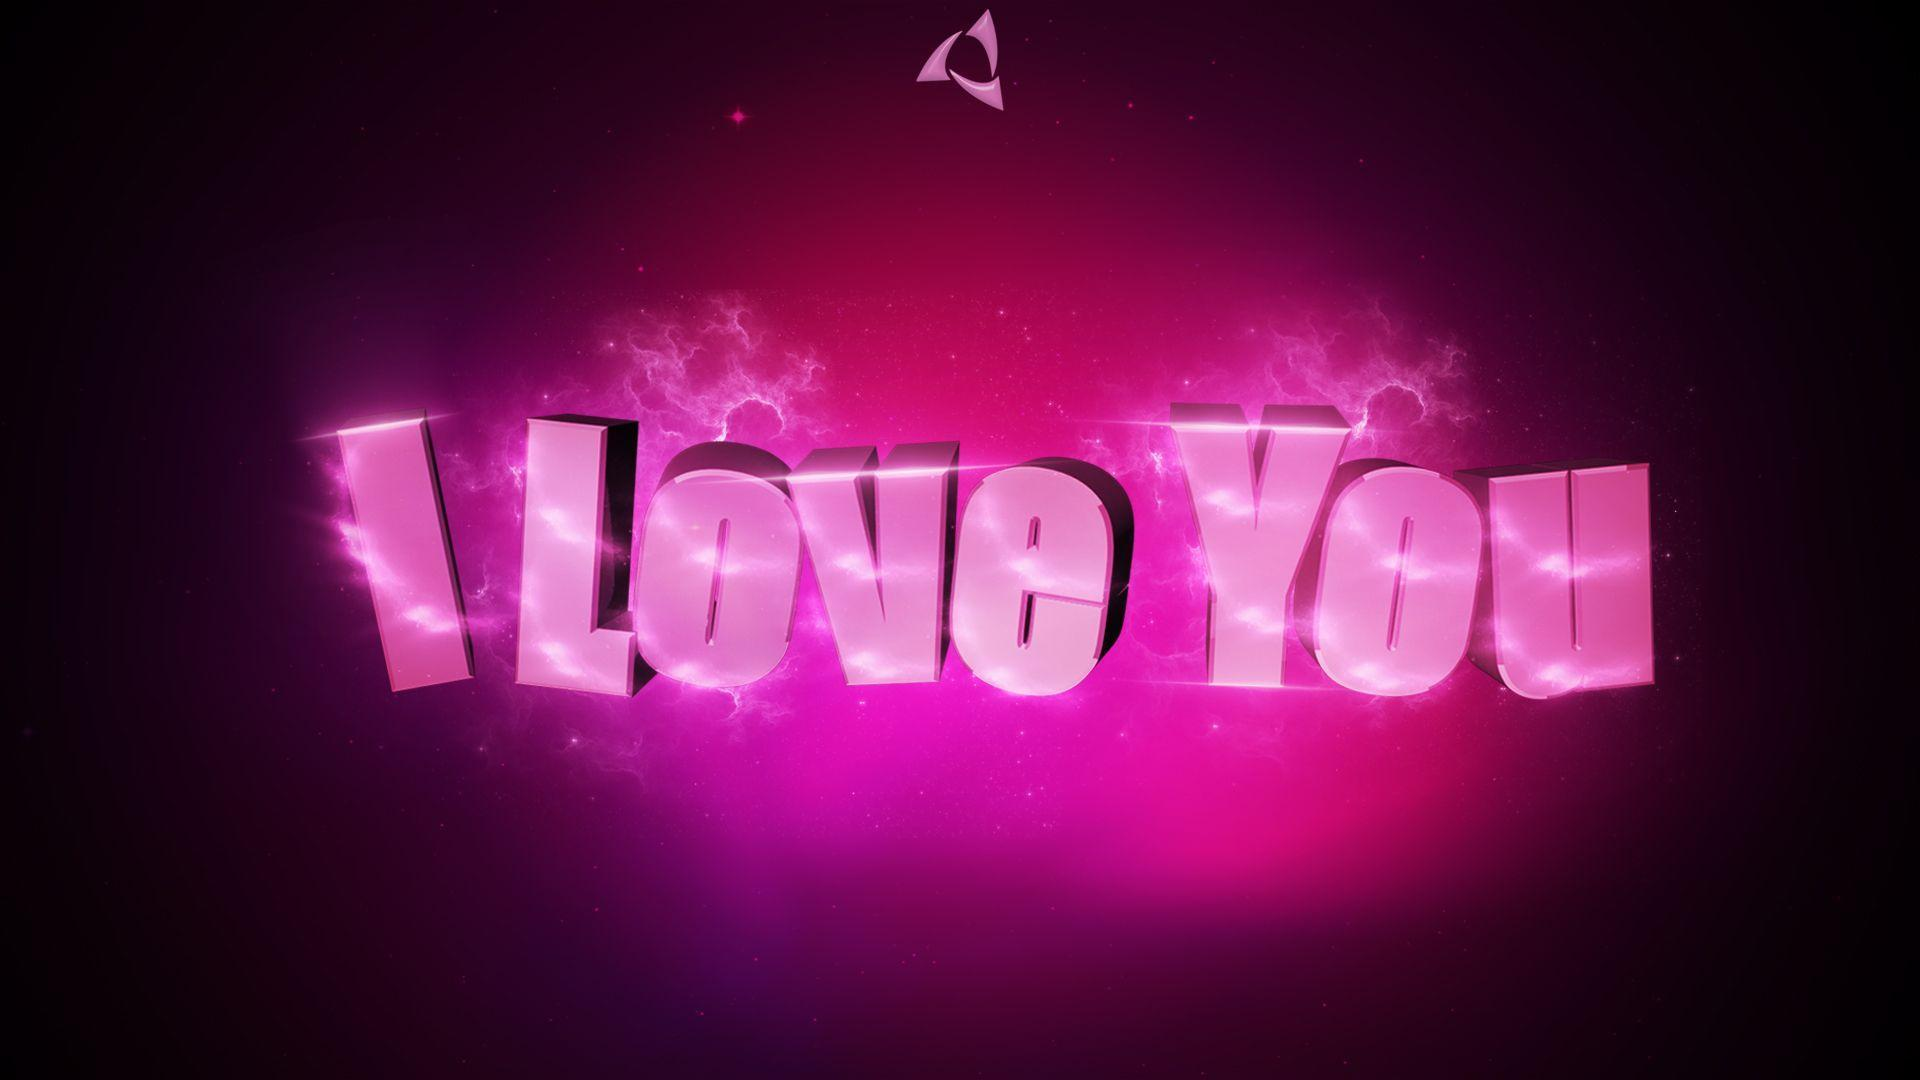 Love U Wallpapers Hd : I Love You Wallpapers - Wallpaper cave